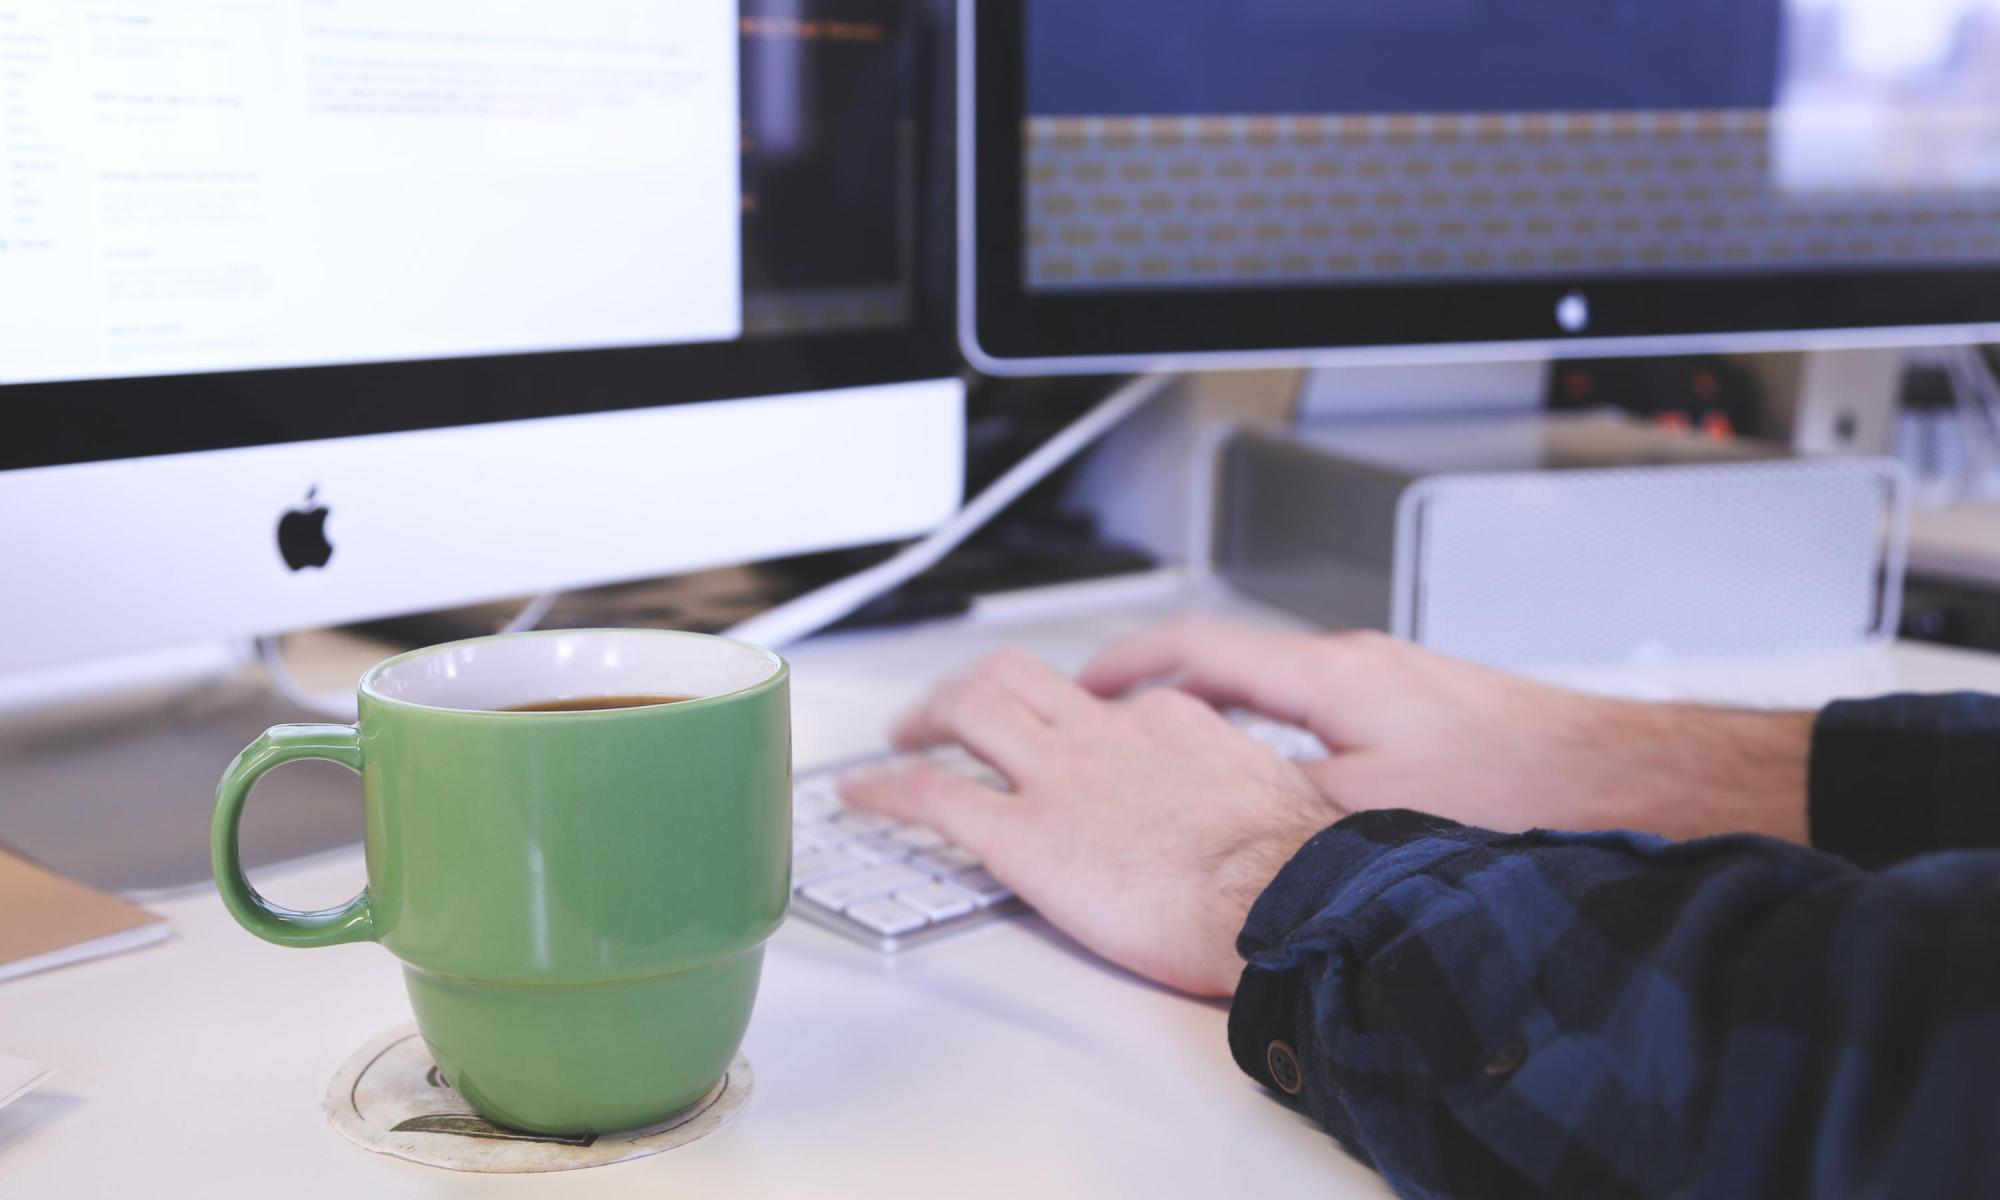 Extending WordPress: A guide to building your first plugin